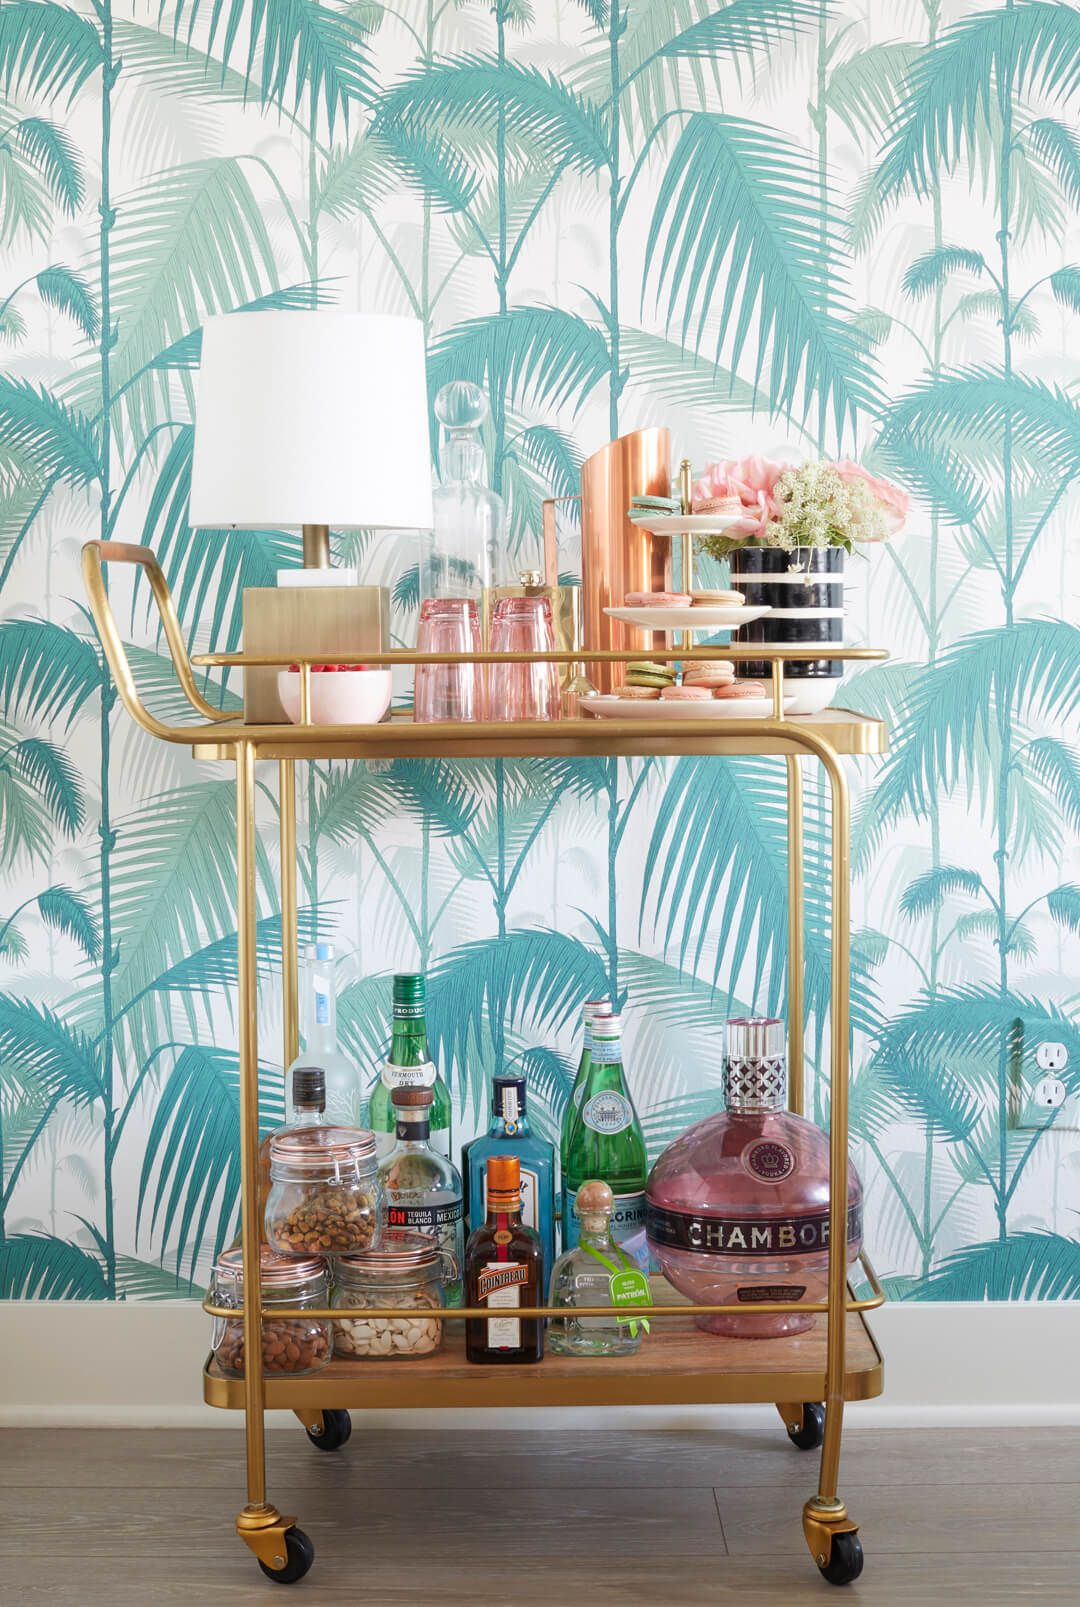 Courtesy of Zeke Ruelas for Emily Henderson Designs & 20+ Best Home Bar Ideas - Cool Home Bar Designs Furniture and Decor